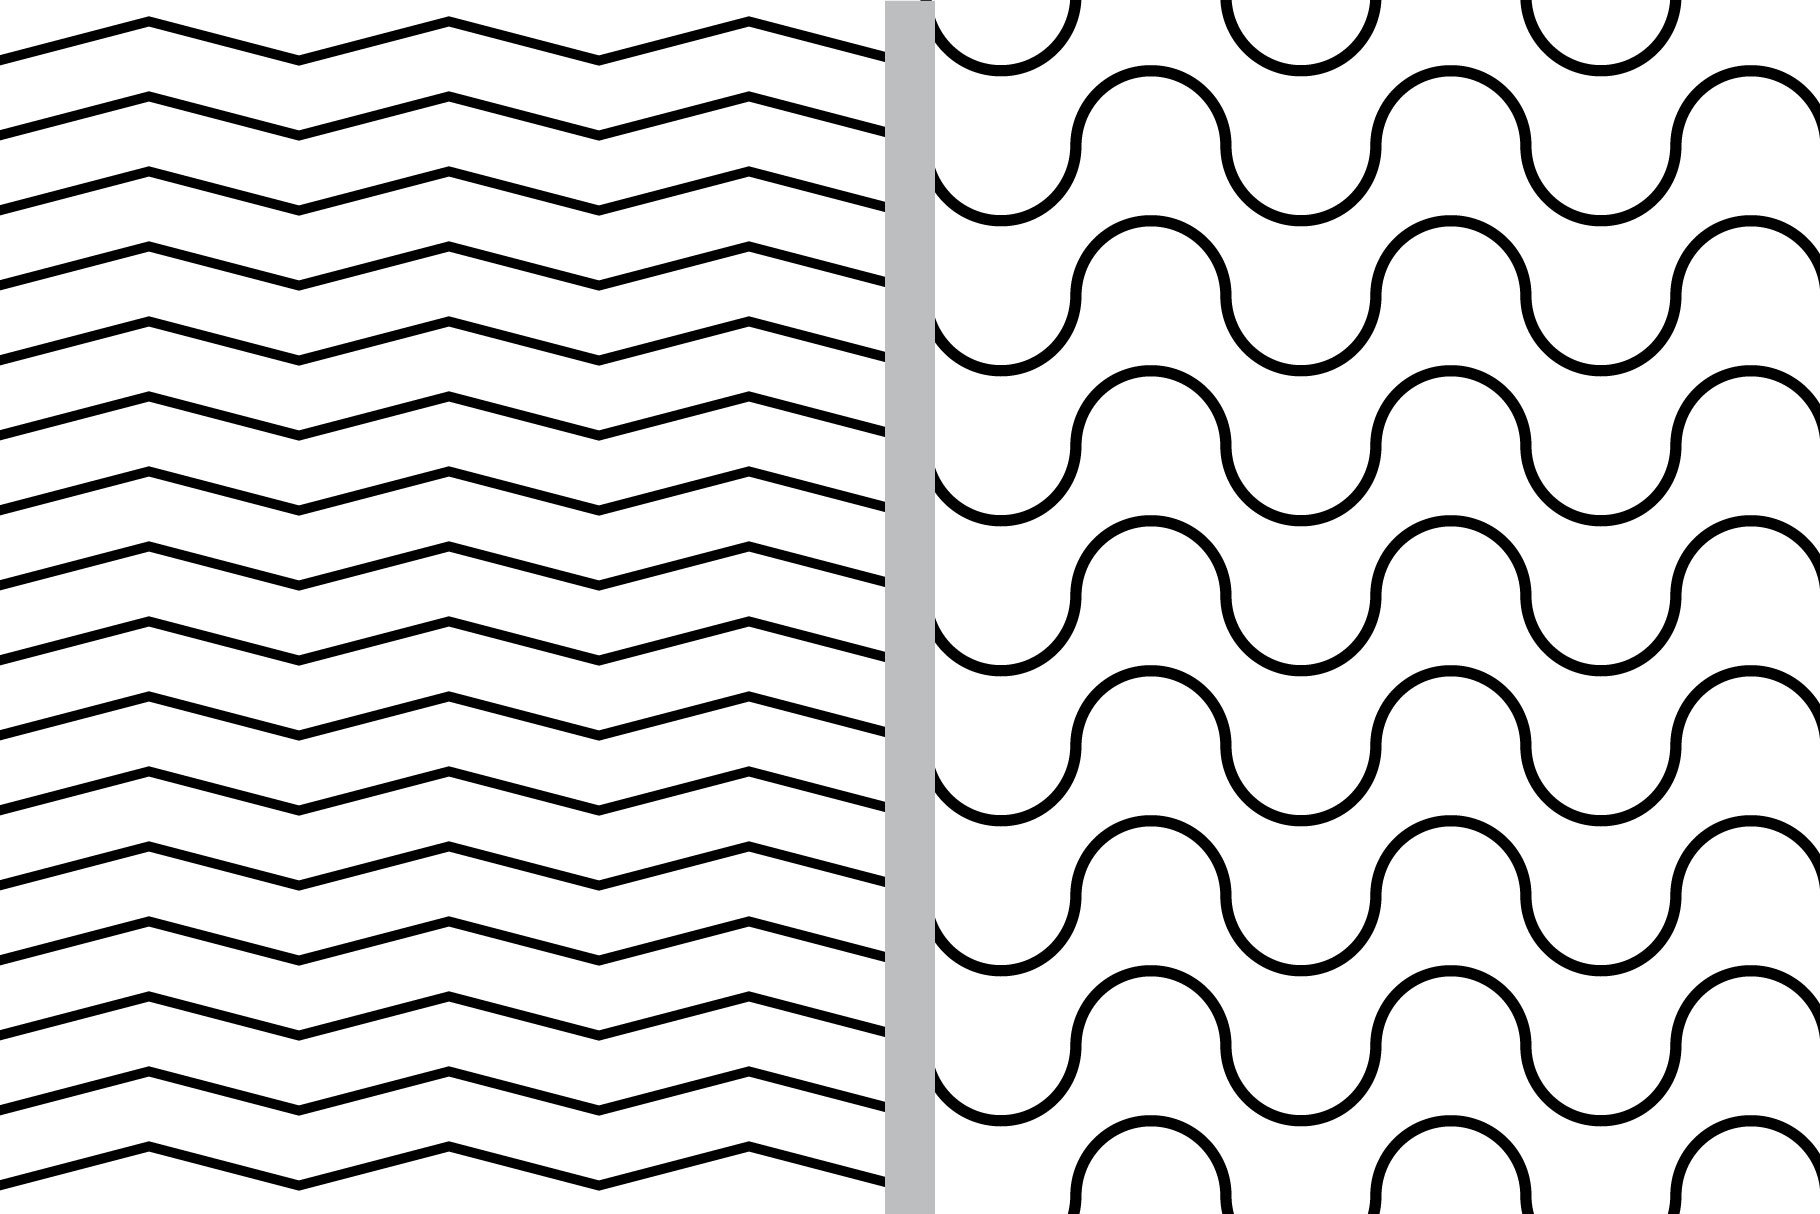 Black and White Seamless Patterns example image 3